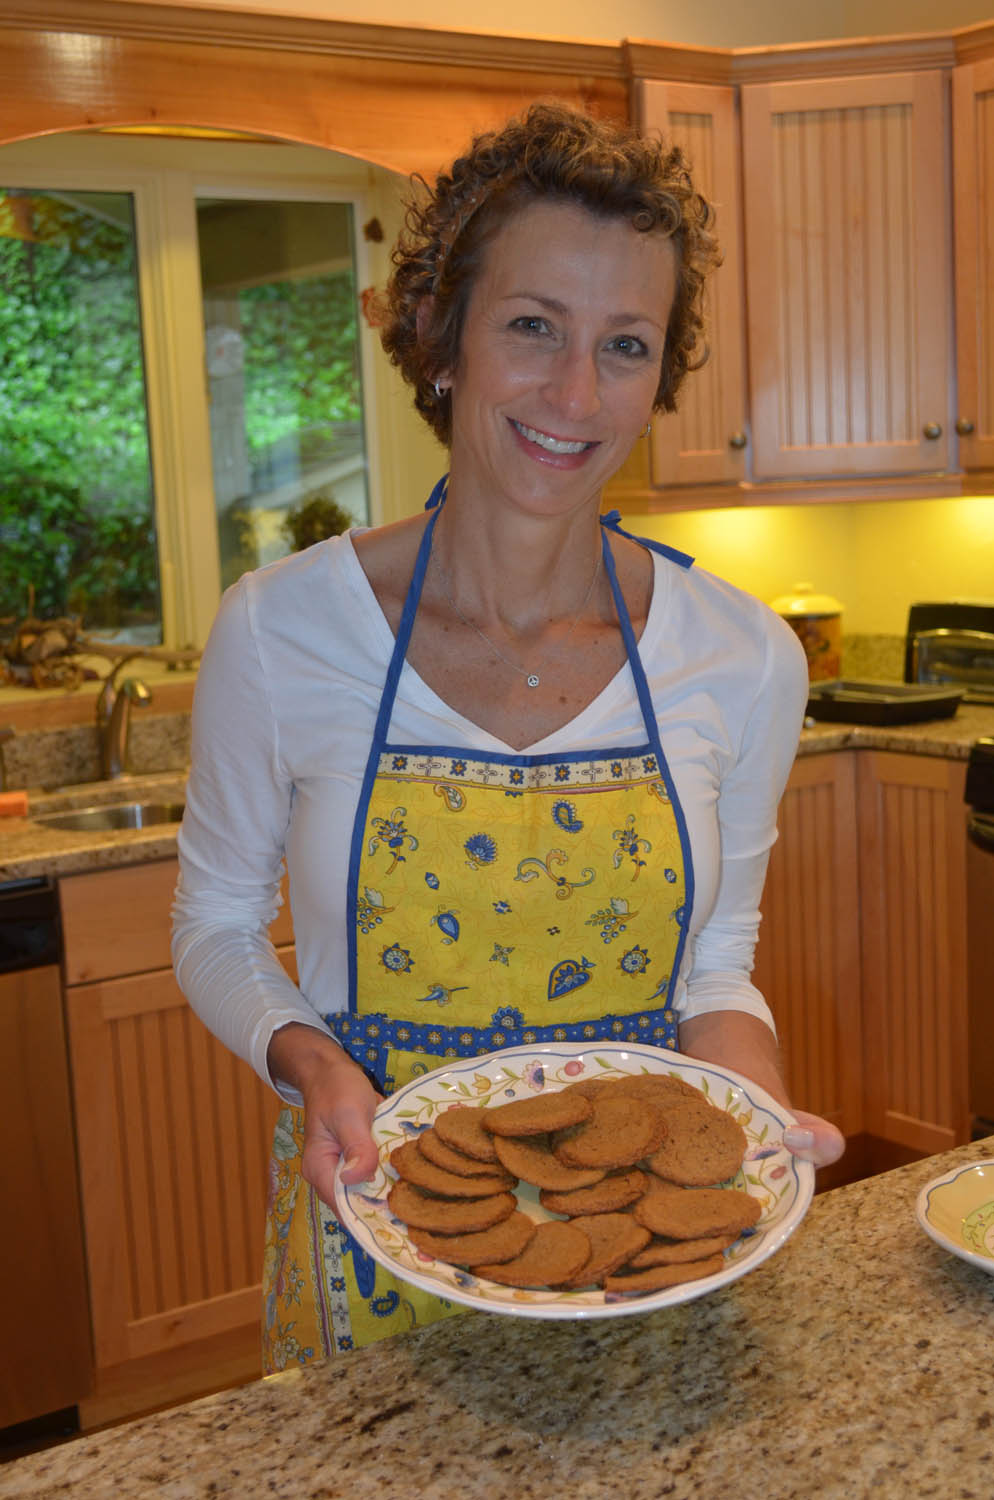 Ashley serving a plate of homemade chewy ginger cookies.